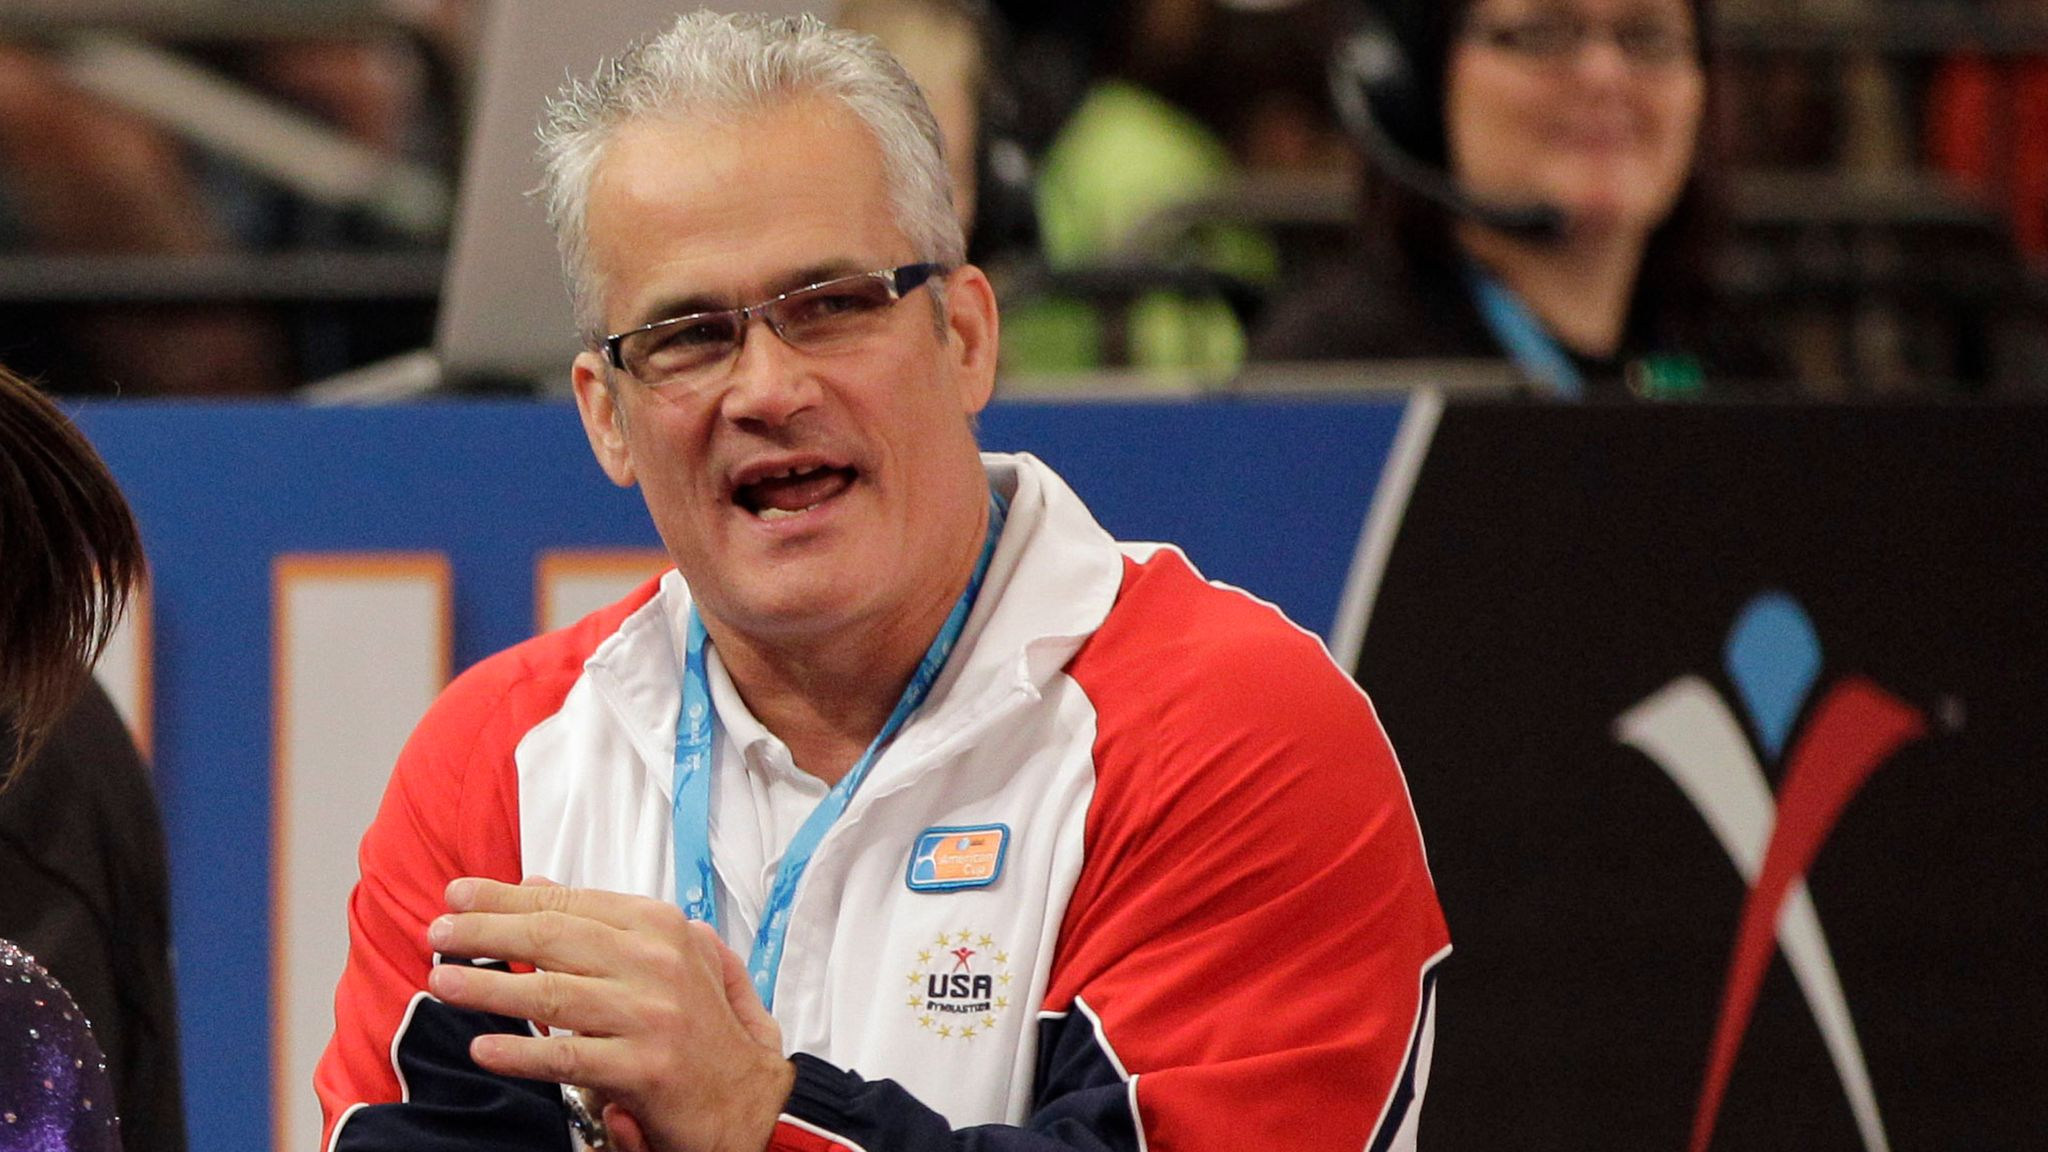 Former USA Gymnastics Coach Charged With Abuse Dies By Suicide